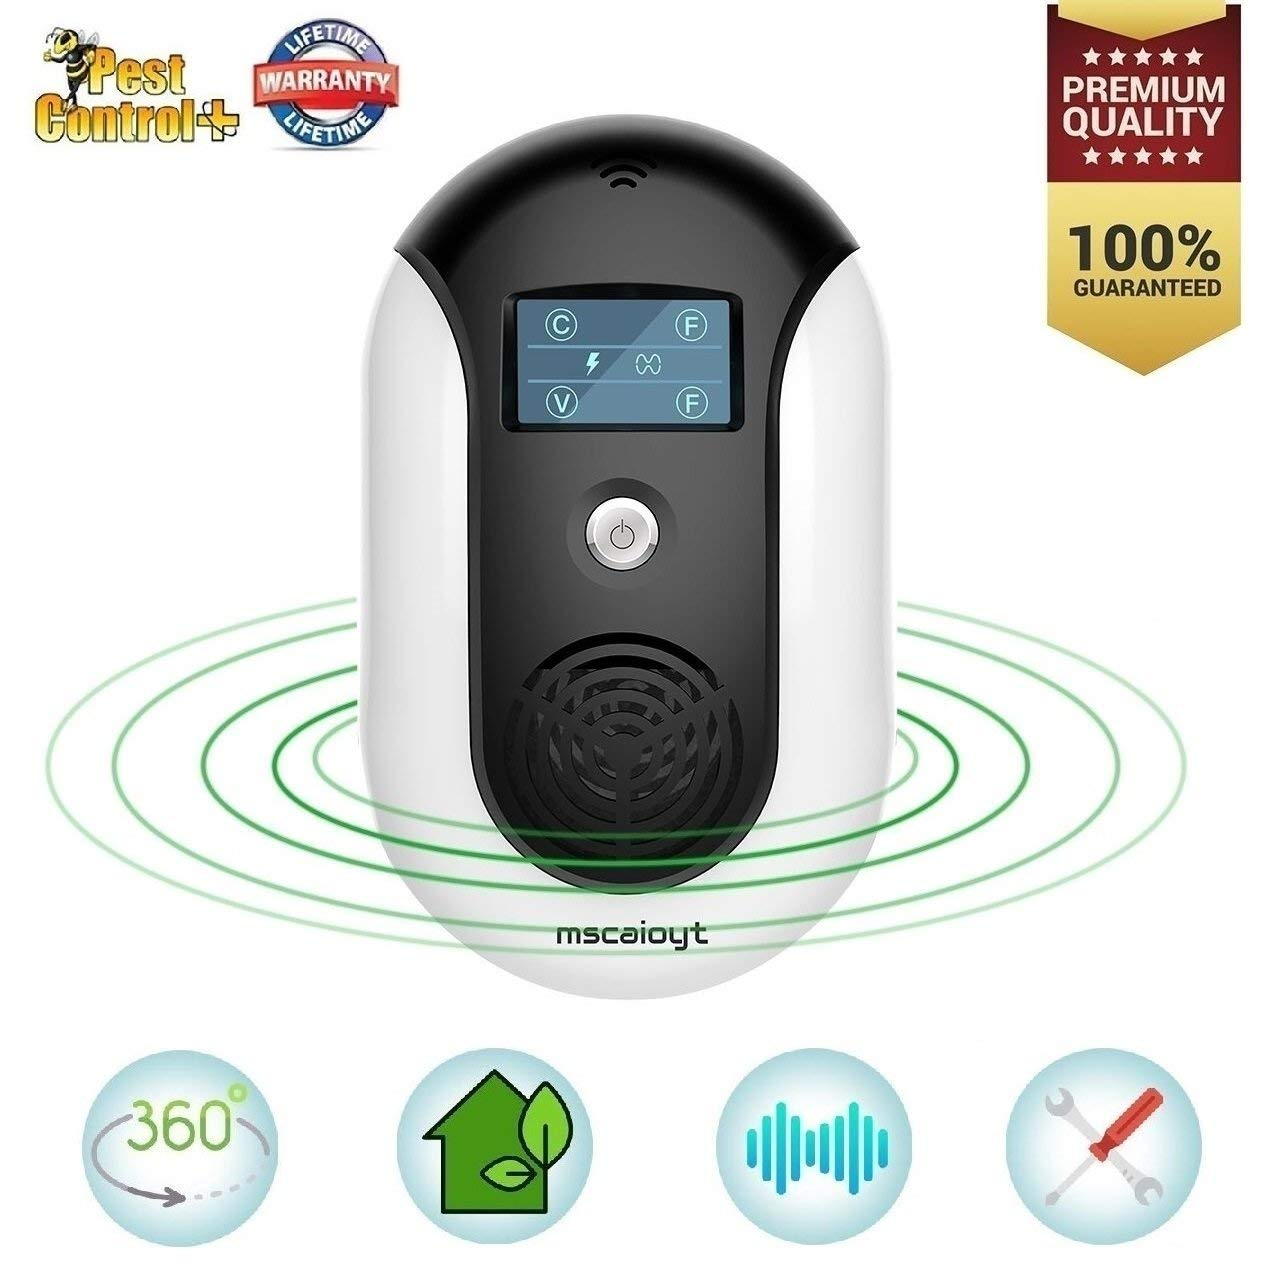 Pest Repellent Ultrasonic Pest Control Mouse Plug in Indoor Outdoor Electronic Control Rodent Mosquito Insect Roach Spider Ant Rat And Flea Safe Control NO Chemicals Ultrasonic Pest Repeller (Black 1)